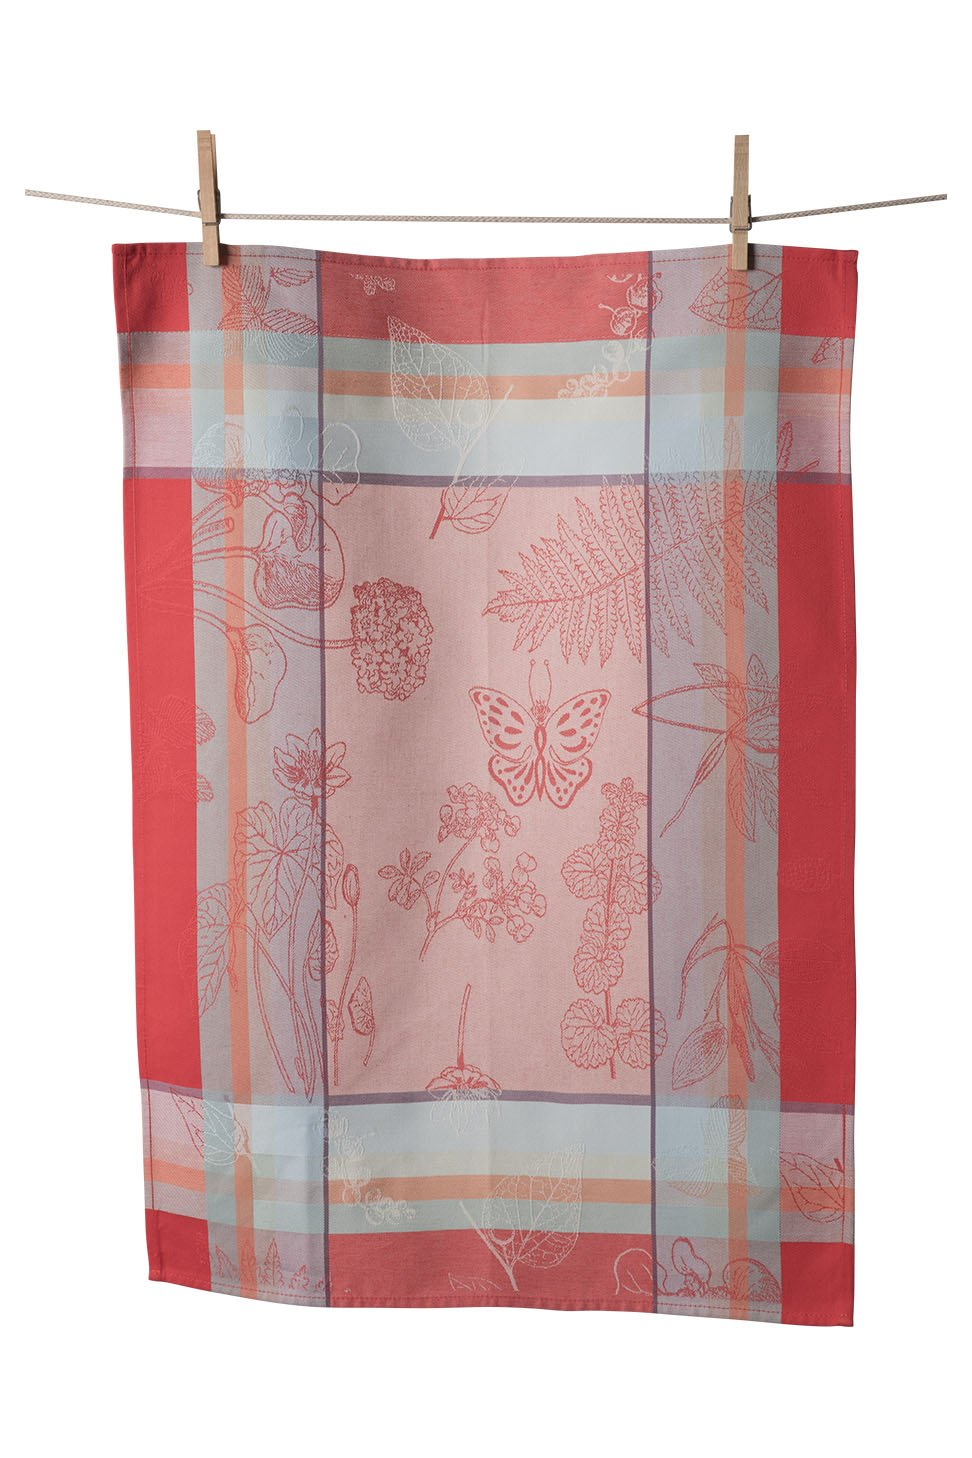 KAF Home Porto Jacquard Kitchen Towel, 100% Cotton, Absorbent, Oversized at 19.5'' x 30'', Made in Portugal, Butterflies